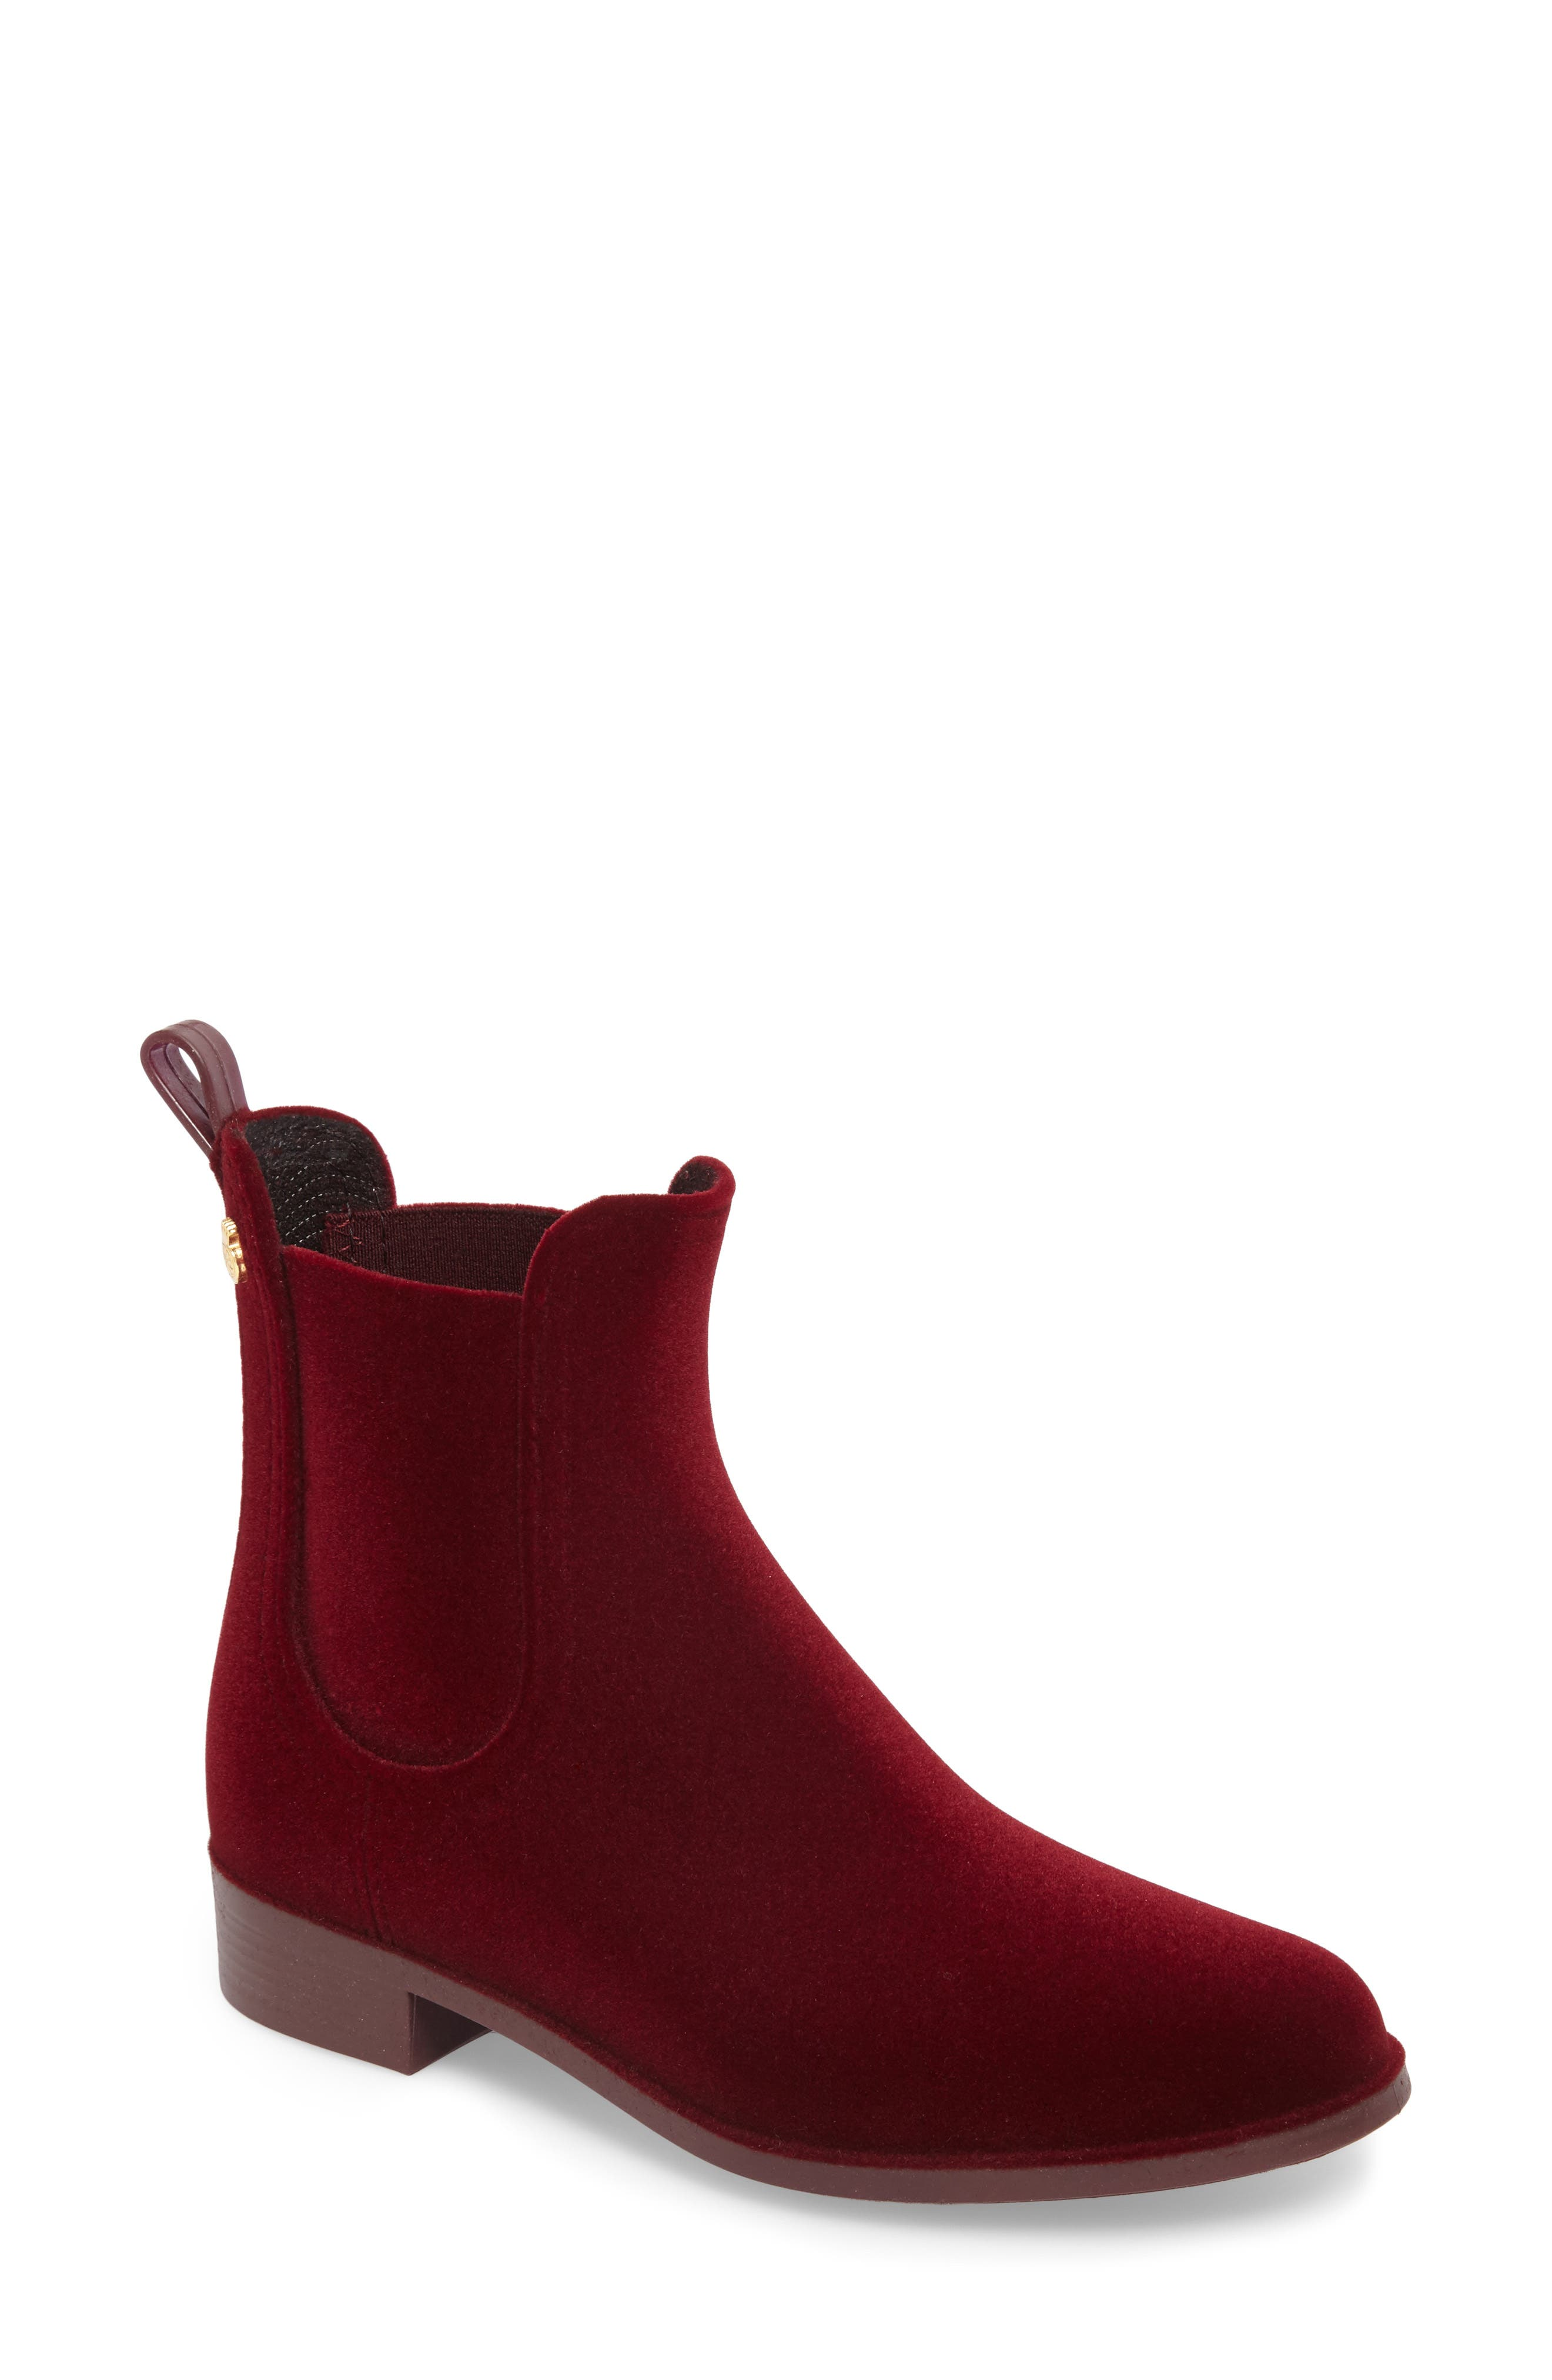 Main Image - Lemon Jelly Velvety Waterproof Chelsea Bootie (Women)